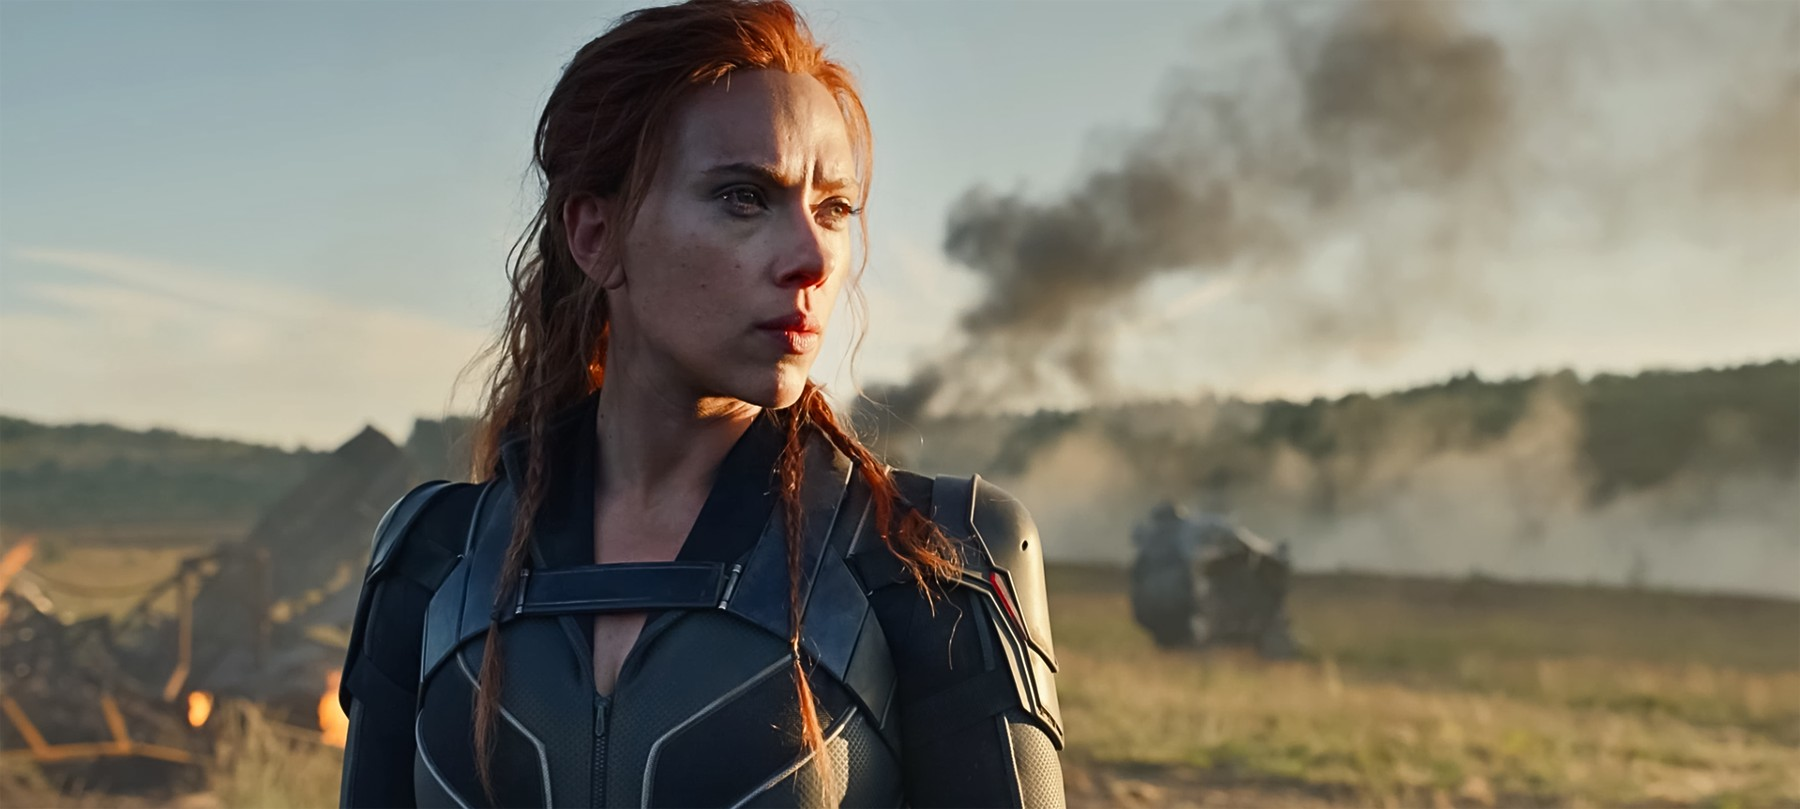 USA. Scarlett Johansson in a scene from the ©Walt Disney Studios new movie: Black Widow (2020) . Plot:  A film about Natasha Romanoff in her quests between the films Civil War and Infinity War., Image: 486704030, License: Rights-managed, Restrictions: Supplied by Landmark Media. Editorial Only. Landmark Media is not the copyright owner of these Film or TV stills but provides a service only for recognised Media outlets., Model Release: no, Credit line: Supplied by LMK / Landmark / Profimedia